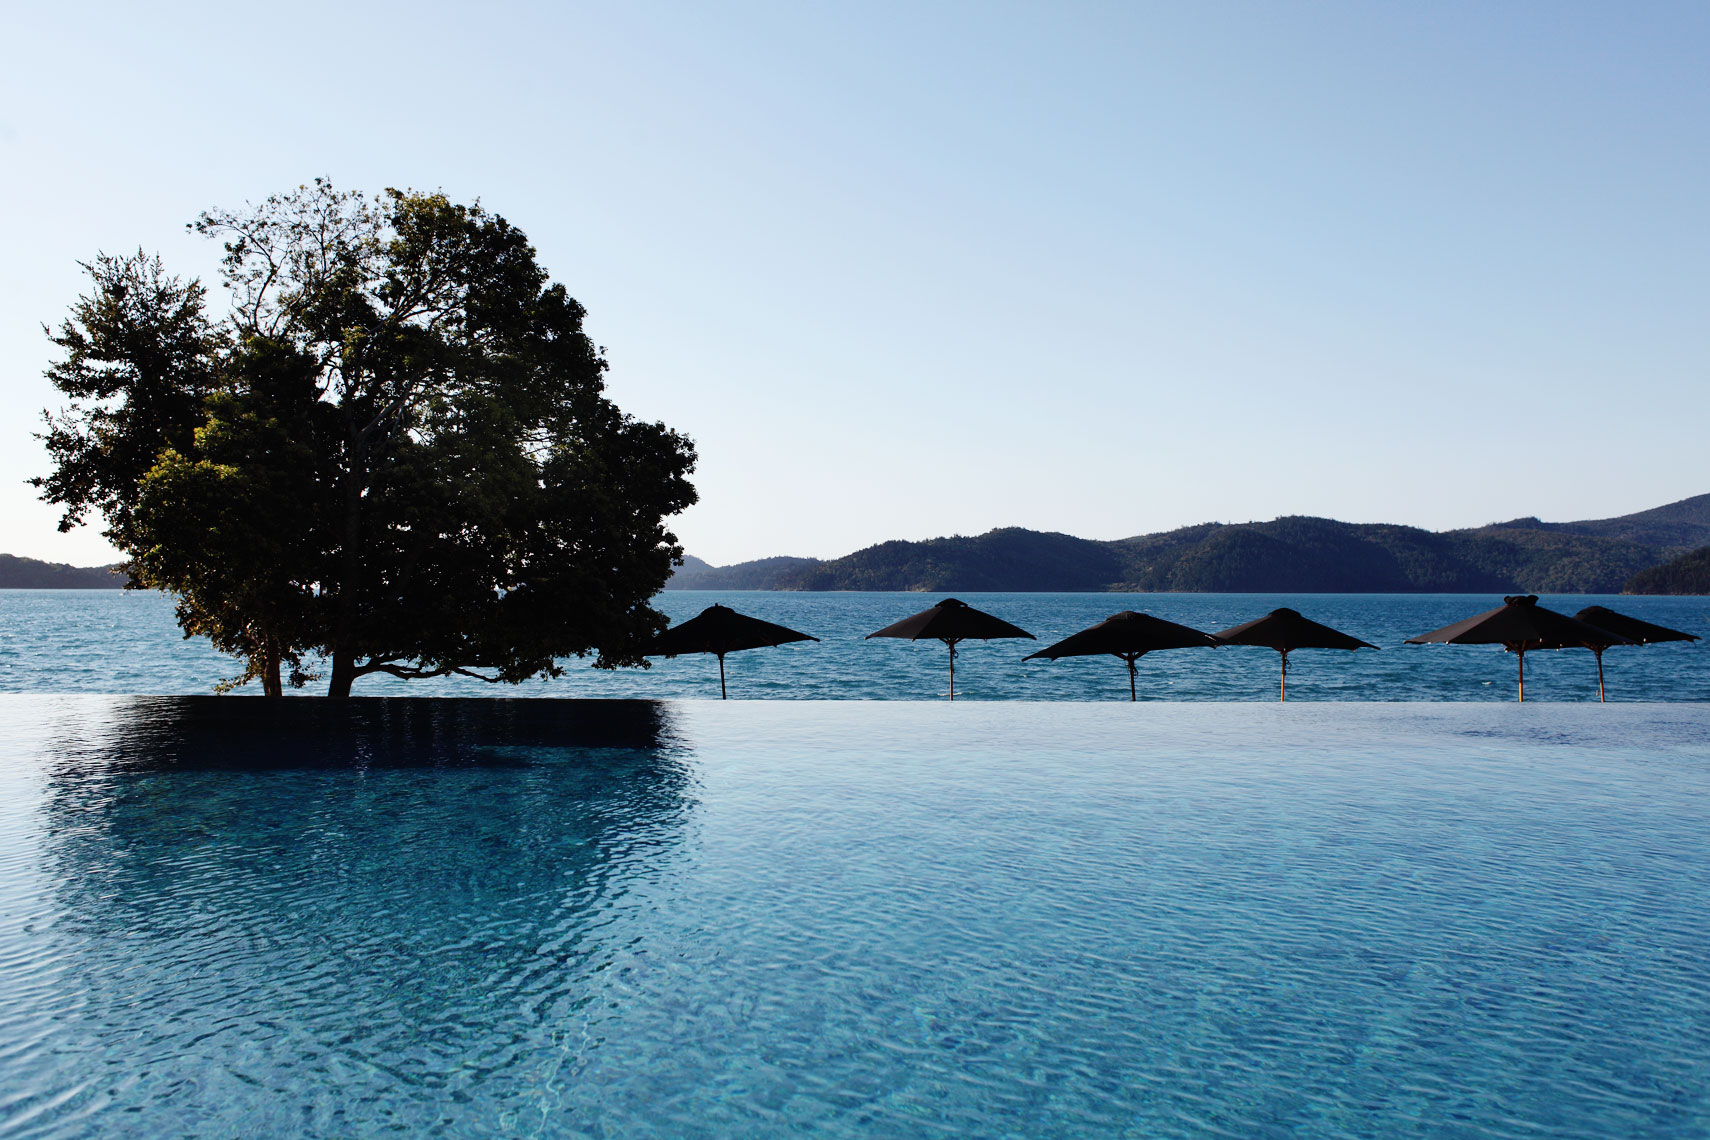 peggy-wong-photography_pwtravelogue_qualia_hamilton-island_australia_1227